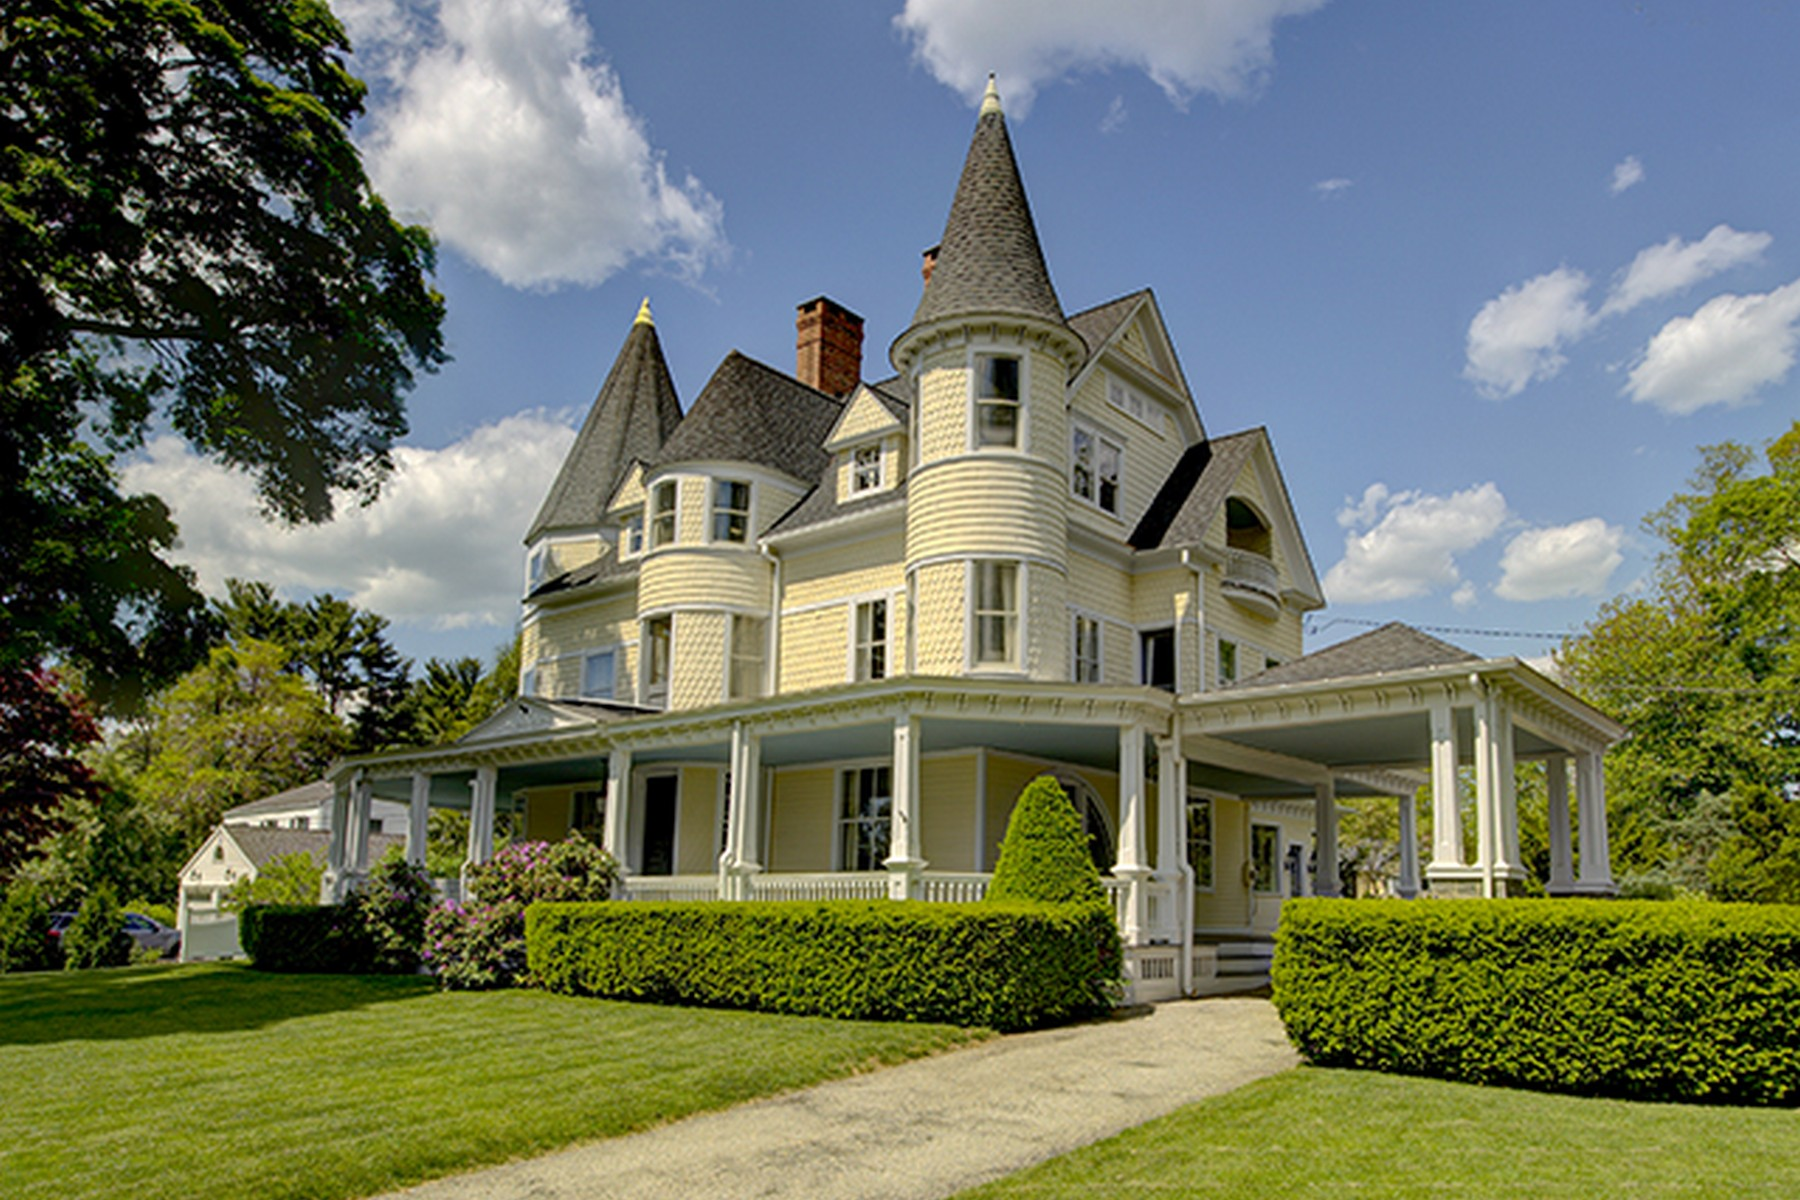 Single Family Home for Sale at Joel Farist House, One of Fairfield's Most Treasured Historic Homes 220 Farist Road Fairfield, Connecticut 06825 United States